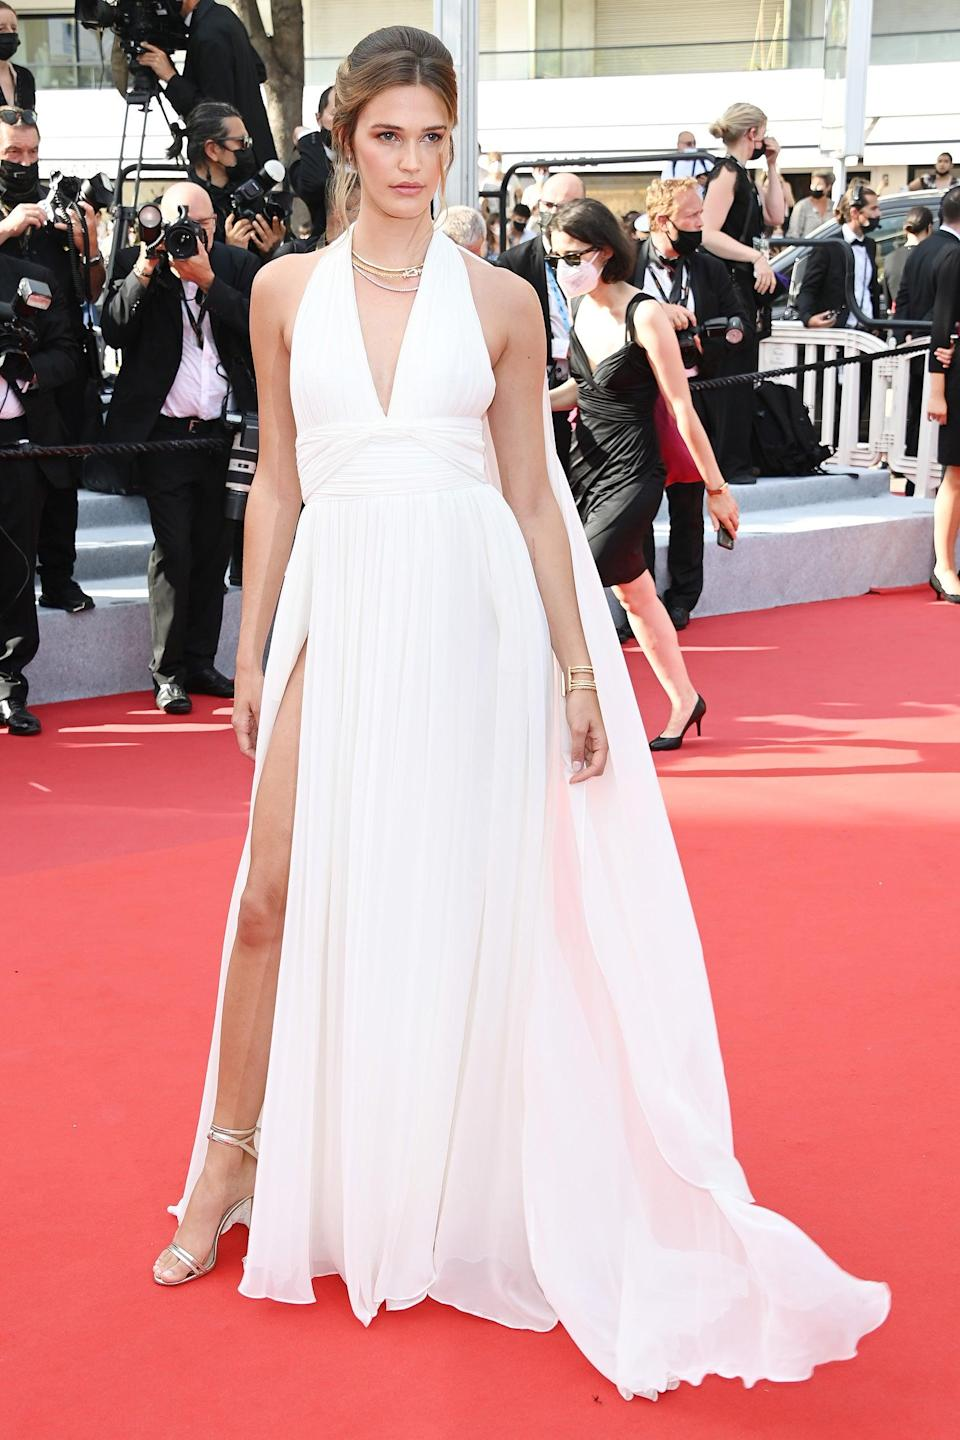 """Model Noelle Capri channeled the early 2000s in a white halter dress with a high slit and dramatic cape. <span class=""""copyright"""">Photo: Daniele Venturelli/WireImage.</span>"""